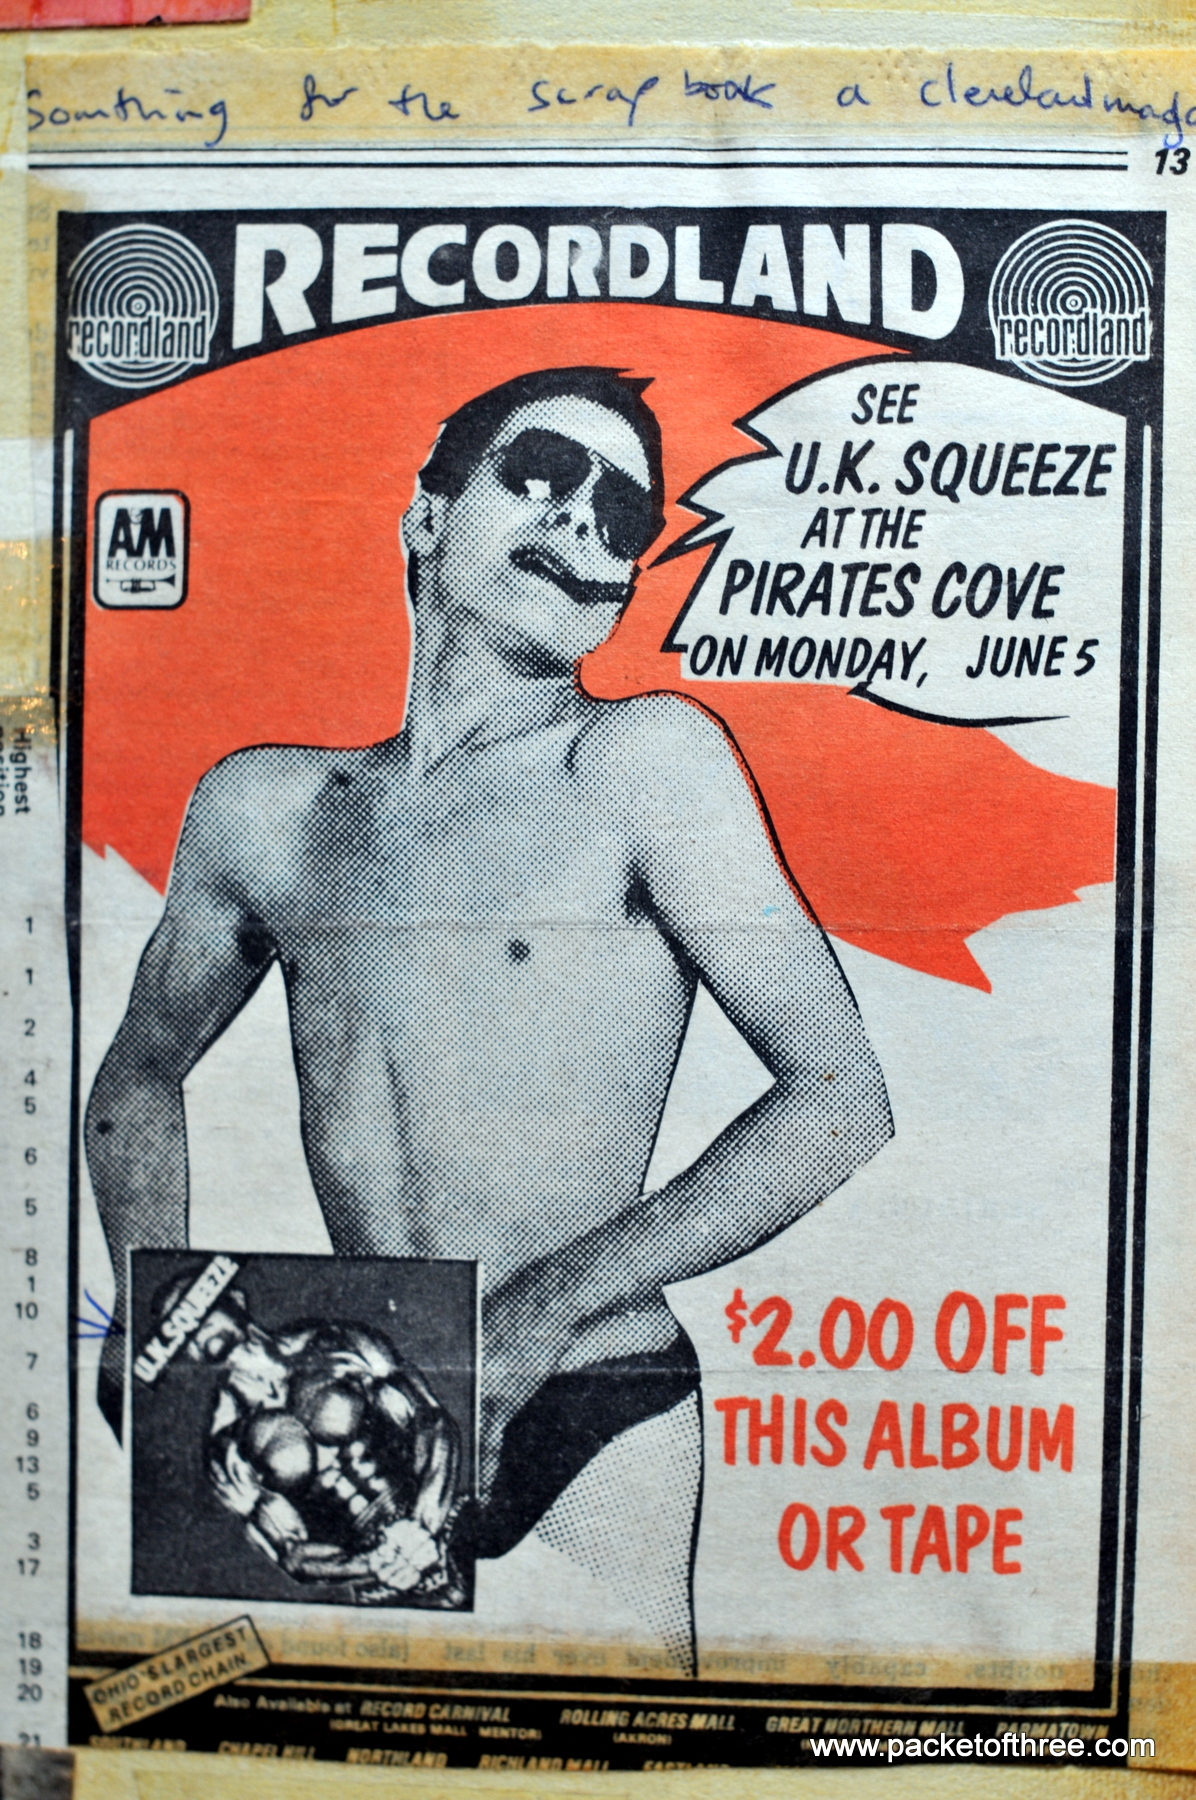 1978-06-05 Pirate's Cove advert